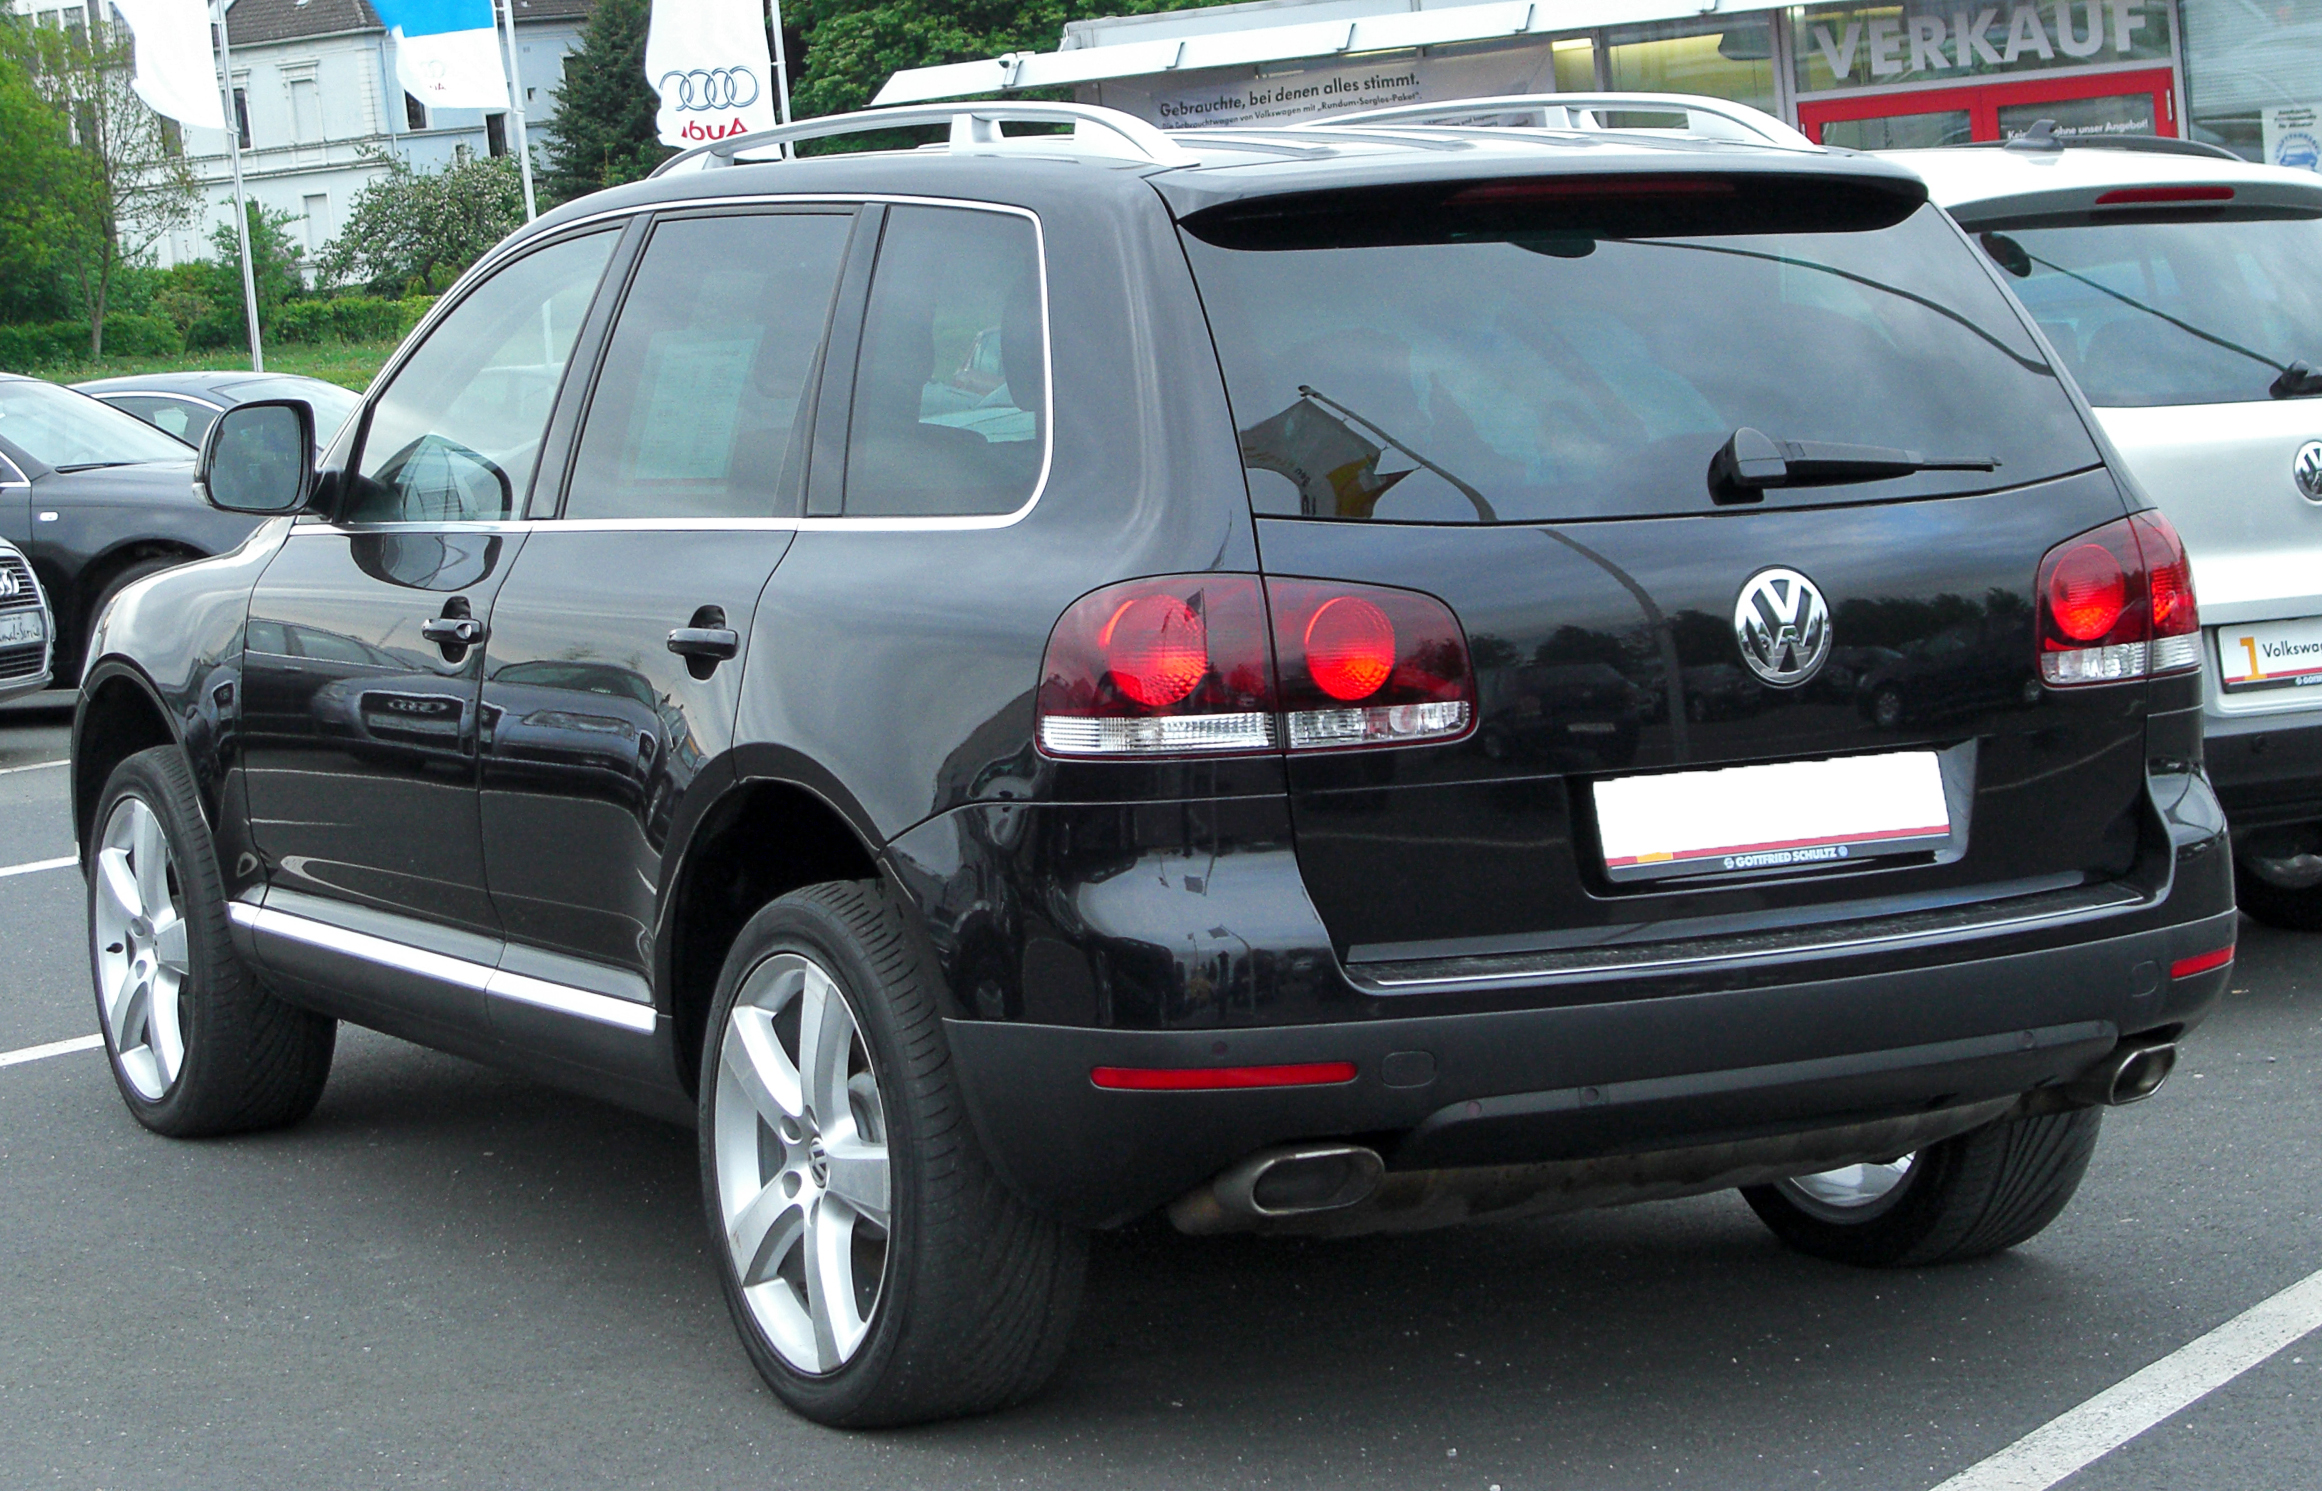 file vw touareg i v6 3 0 tdi facelift rear wikimedia commons. Black Bedroom Furniture Sets. Home Design Ideas